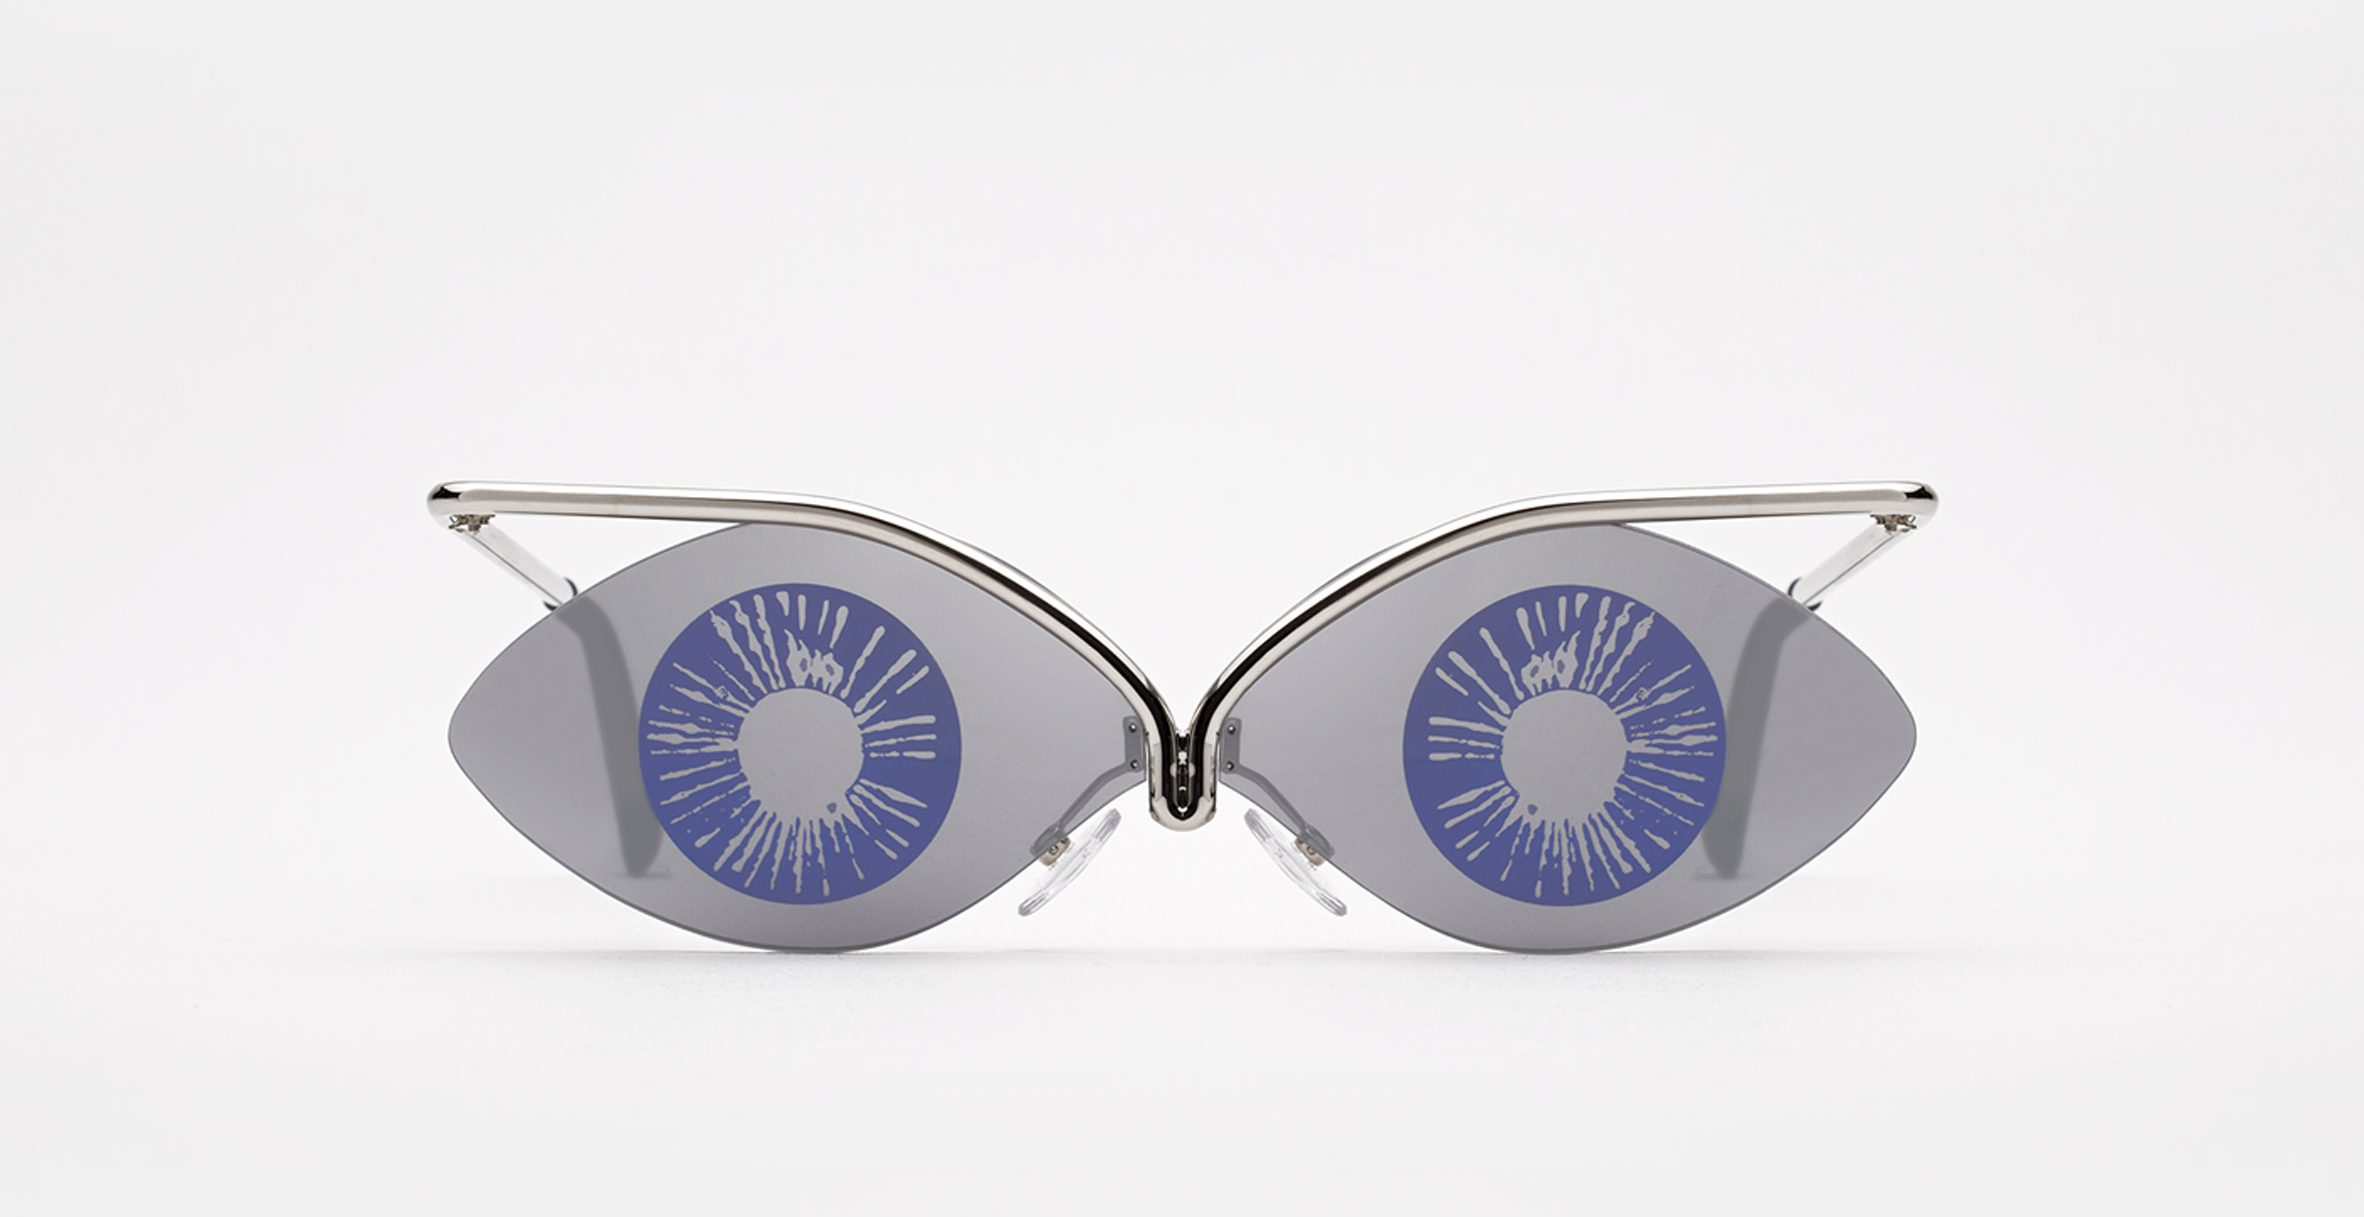 Andy Warhol-themed sunglasses reference the artist's early illustrations